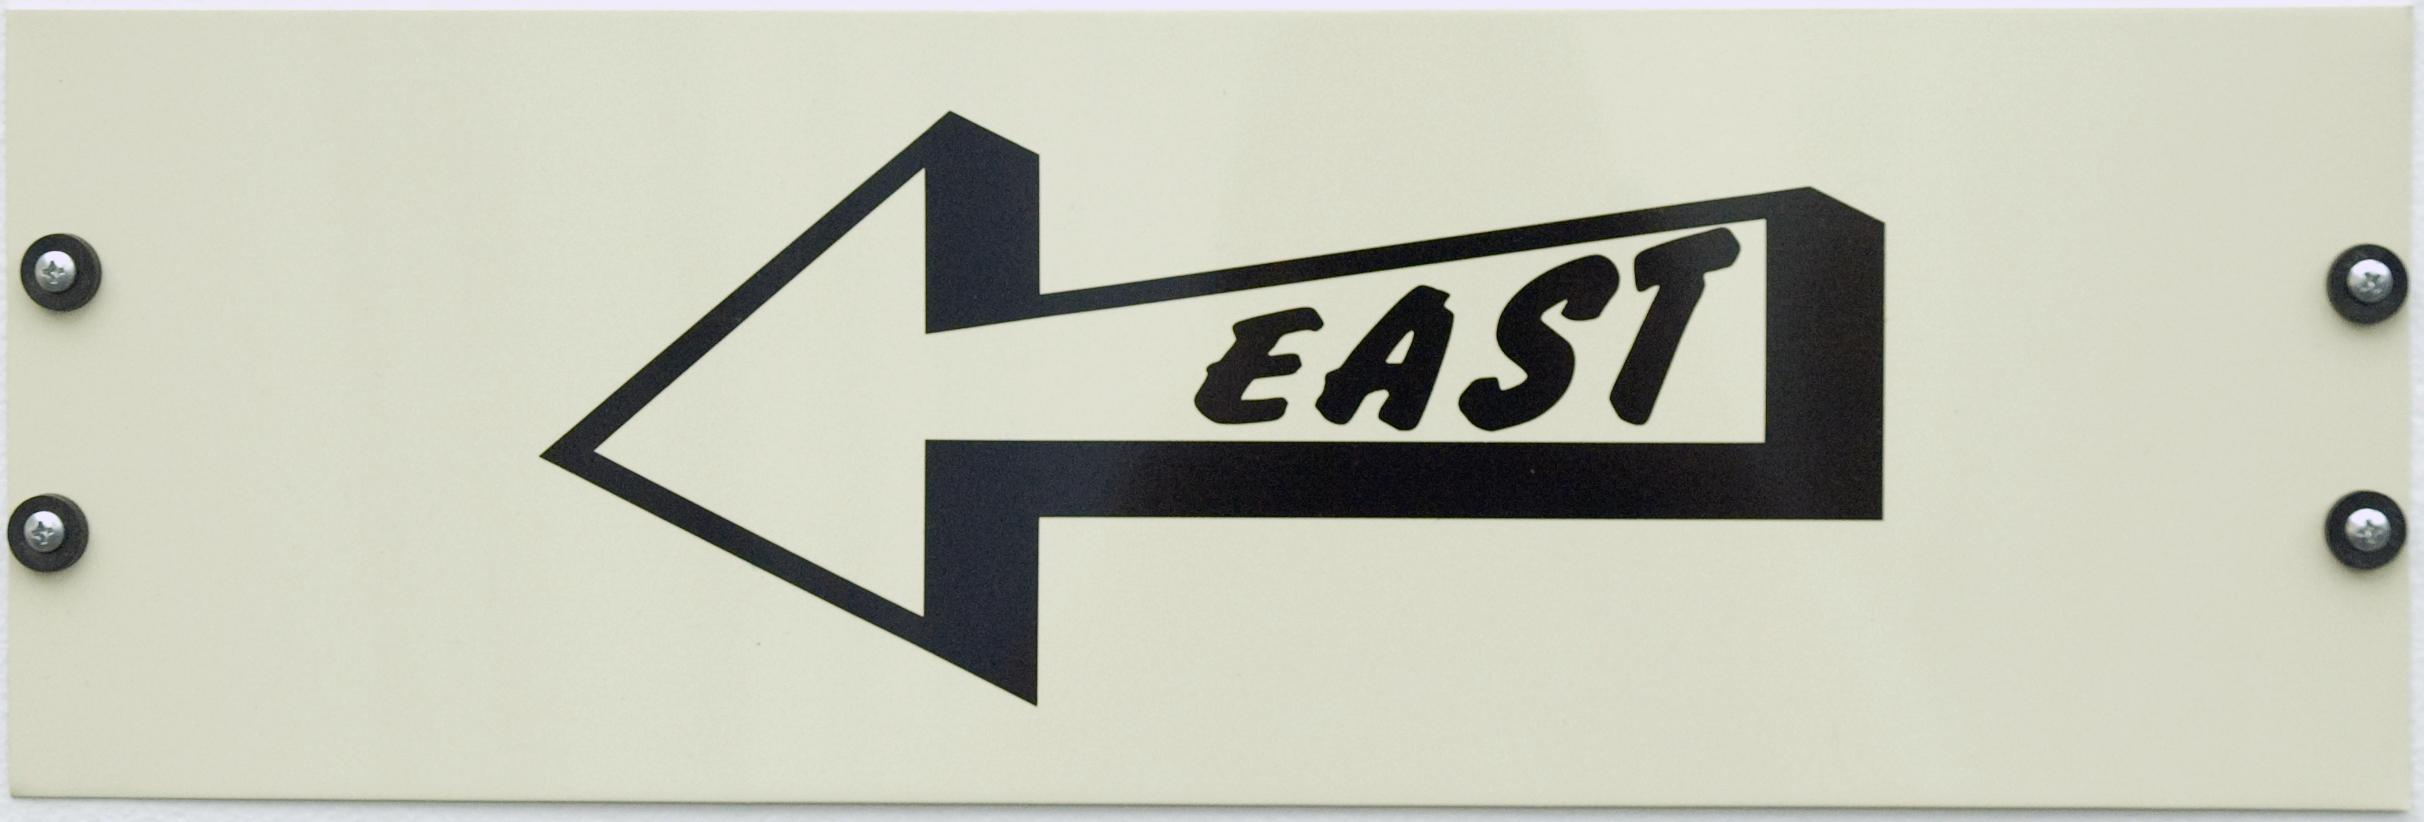 """A white sign shows a black outline of an arrow pointing to the left. Inside the arrow in black text """"EAST."""""""